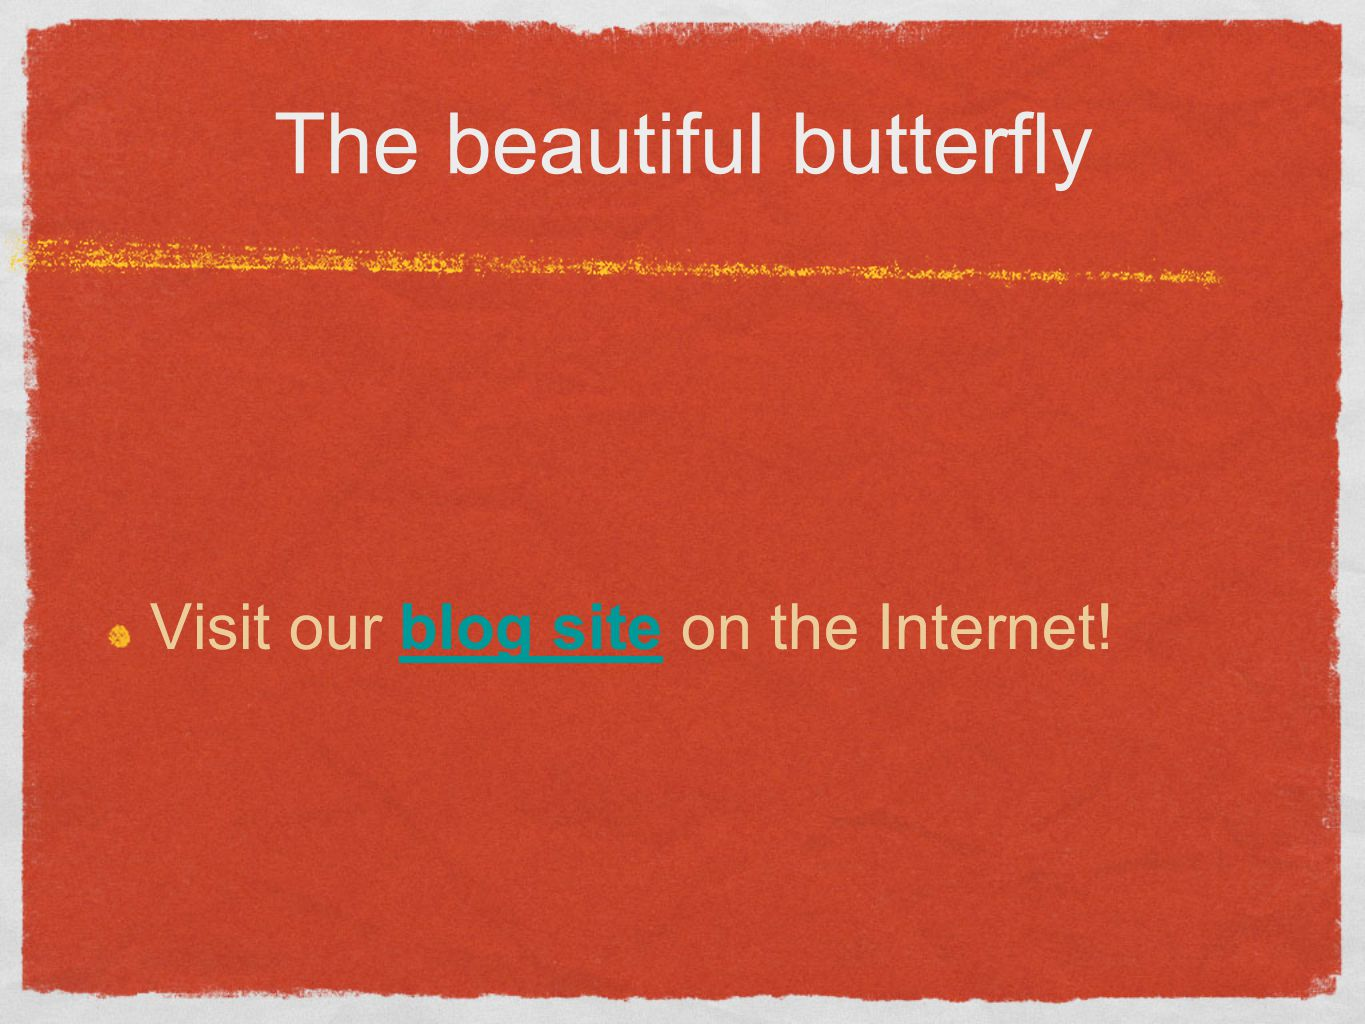 The beautiful butterfly Visit our blog site on the Internet!blog site